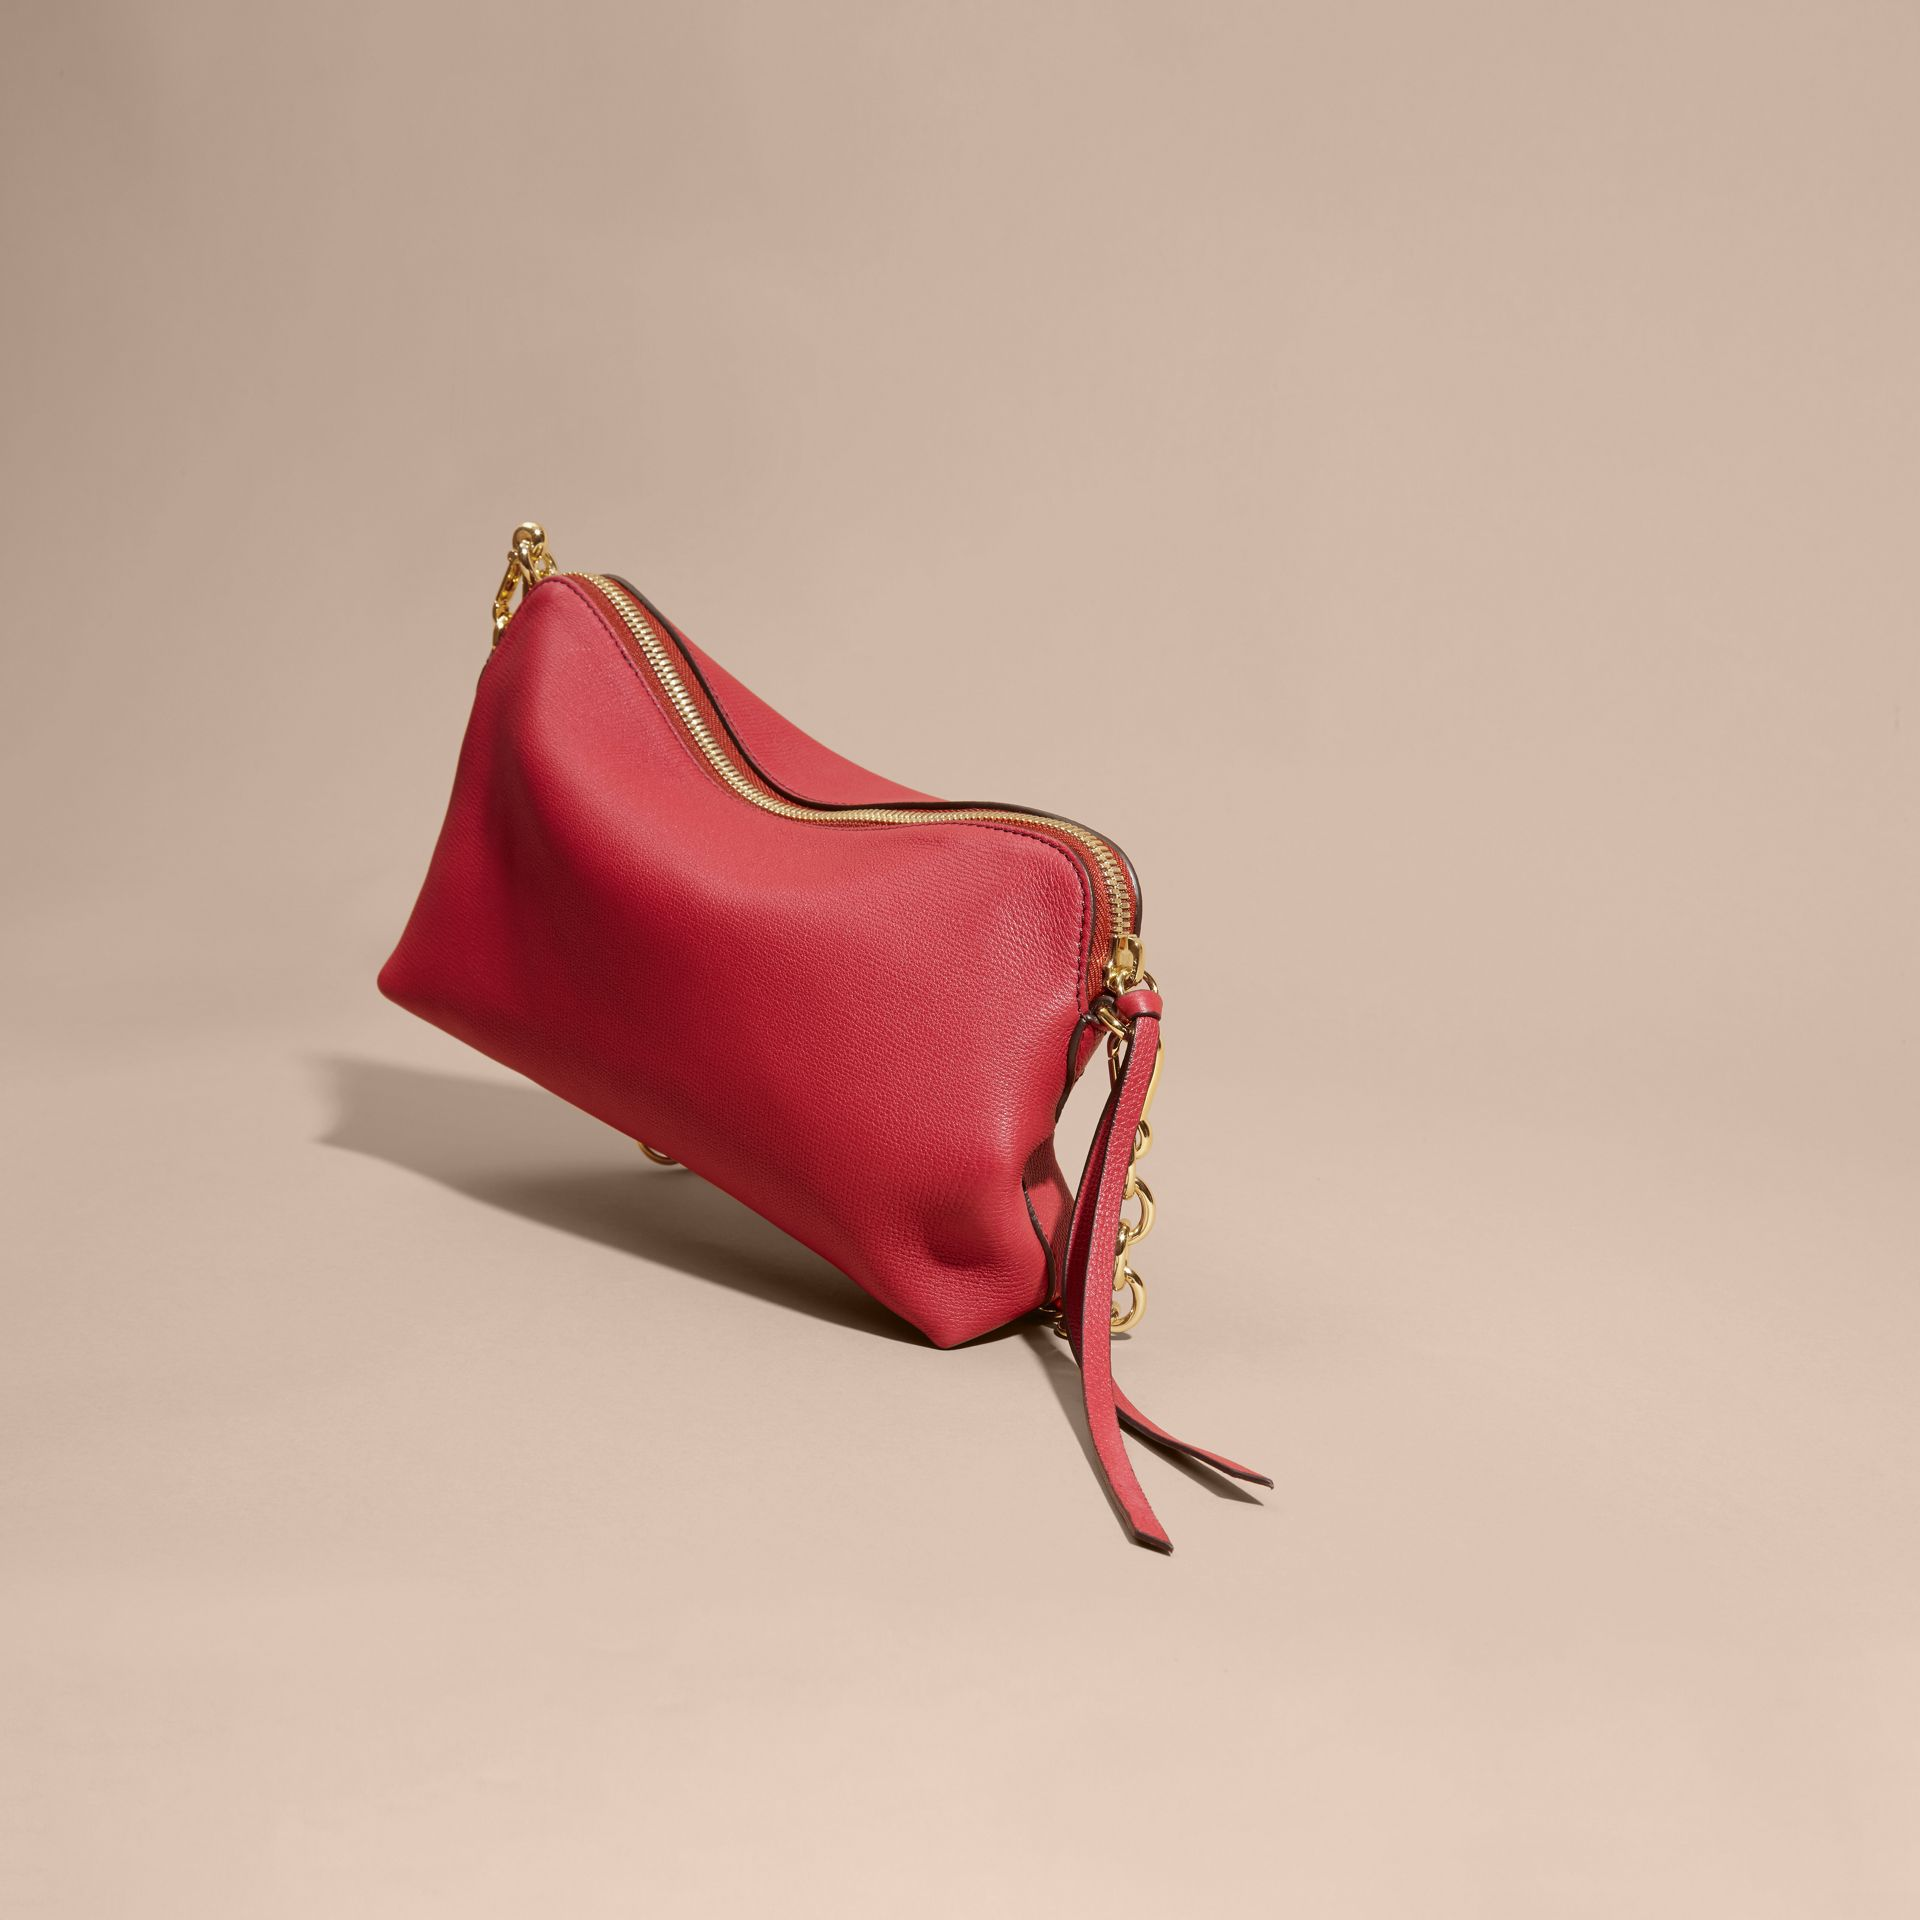 Grainy Leather Clutch Bag Russet Red - gallery image 5